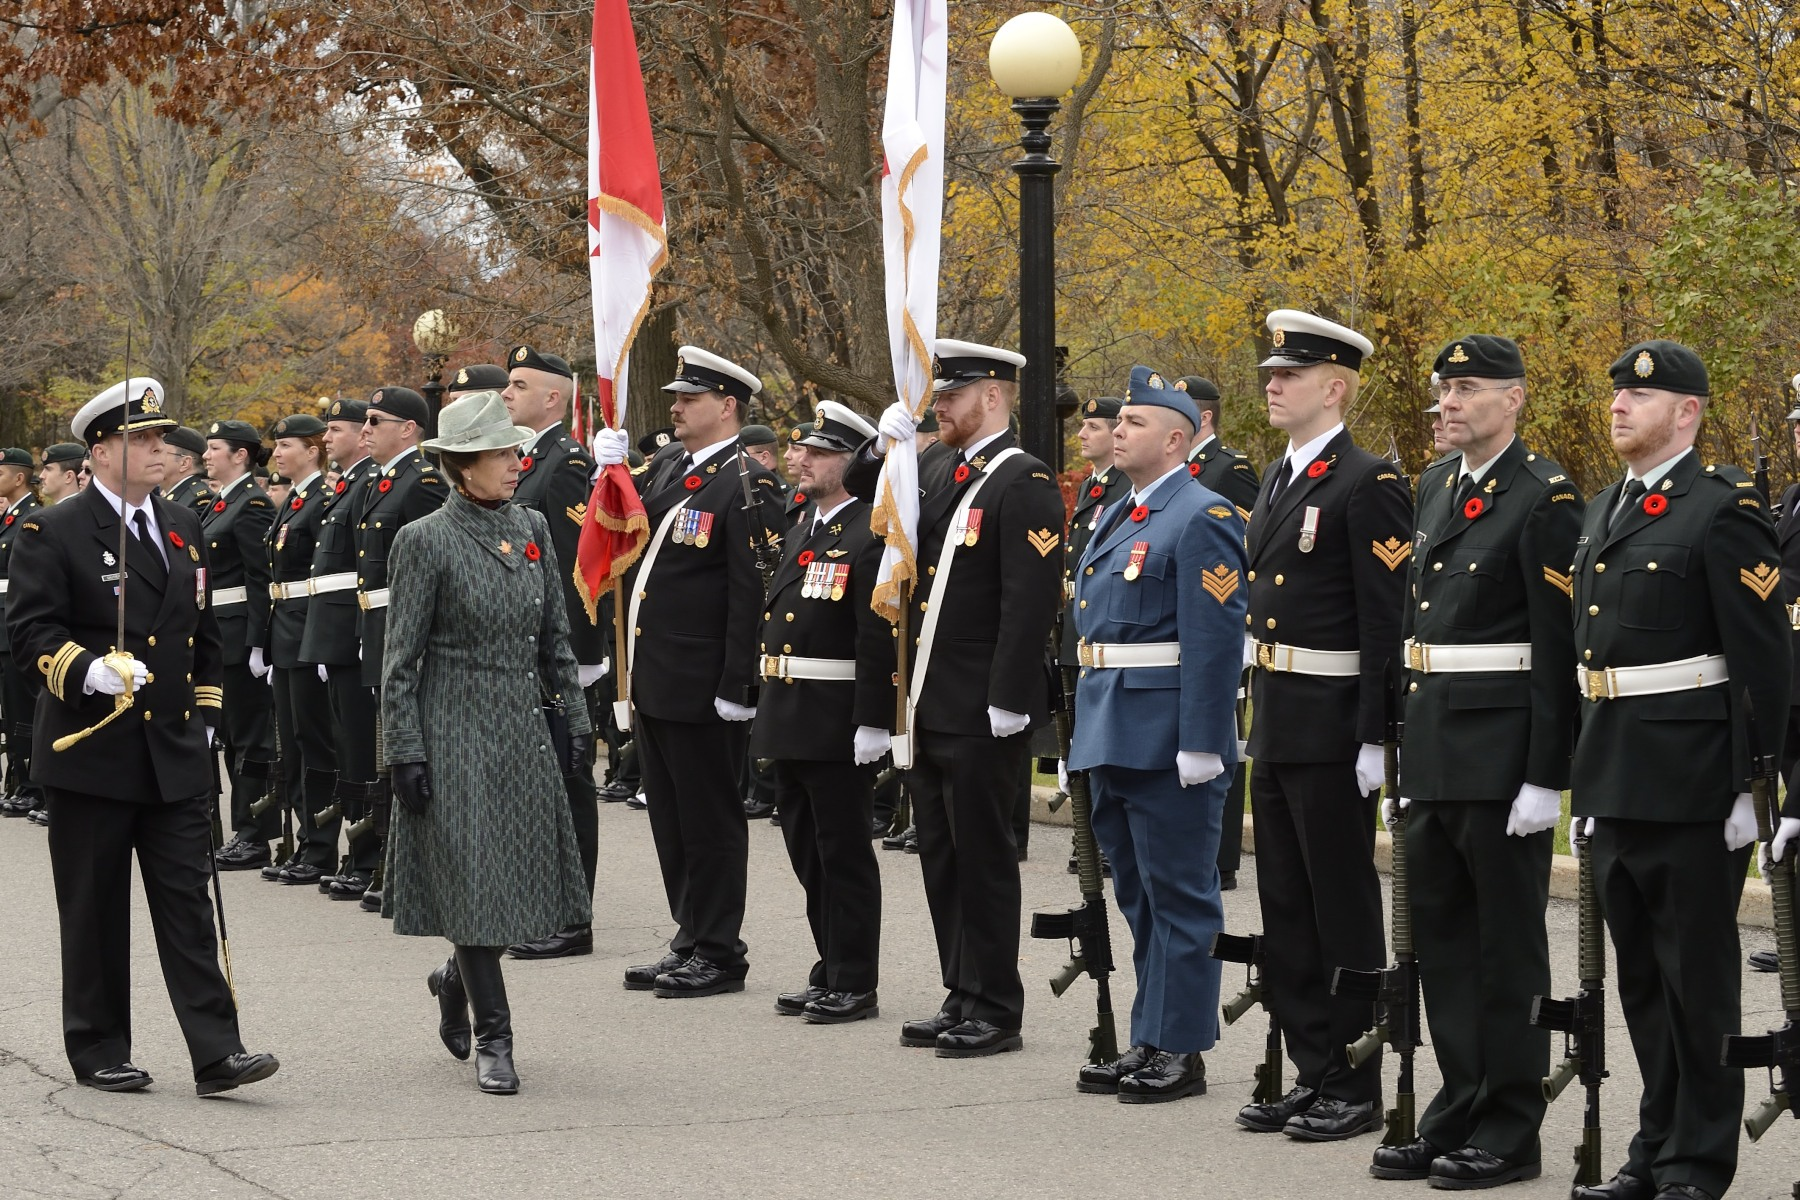 Her Royal Highness proceeded to the inspection of a guard of honour composed of members of the Canadian Armed Forces.